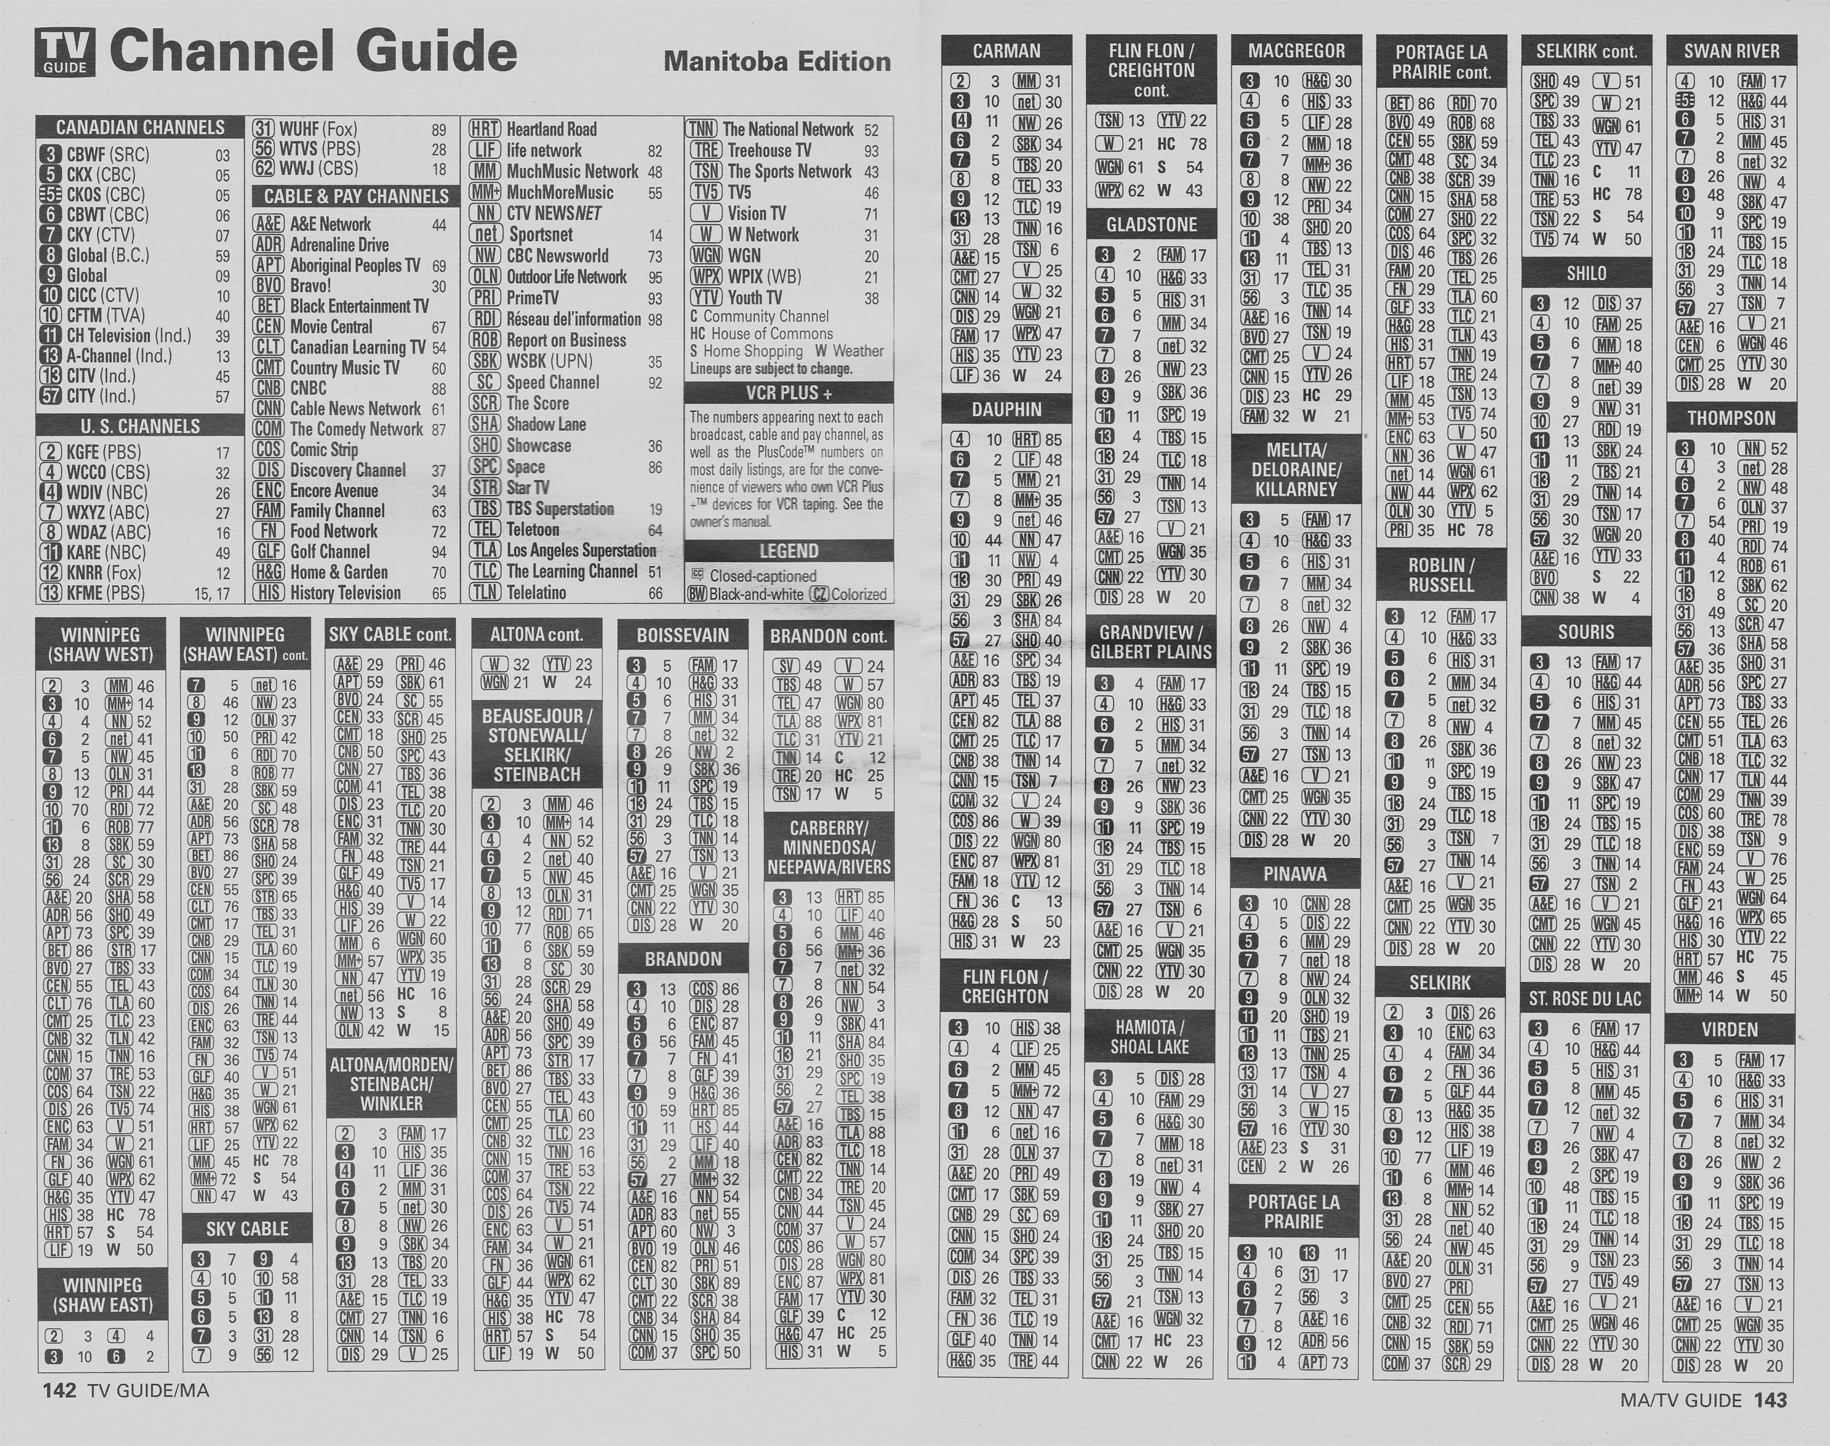 TV Guide August 24 2002 Manitoba Edition Channel Guide